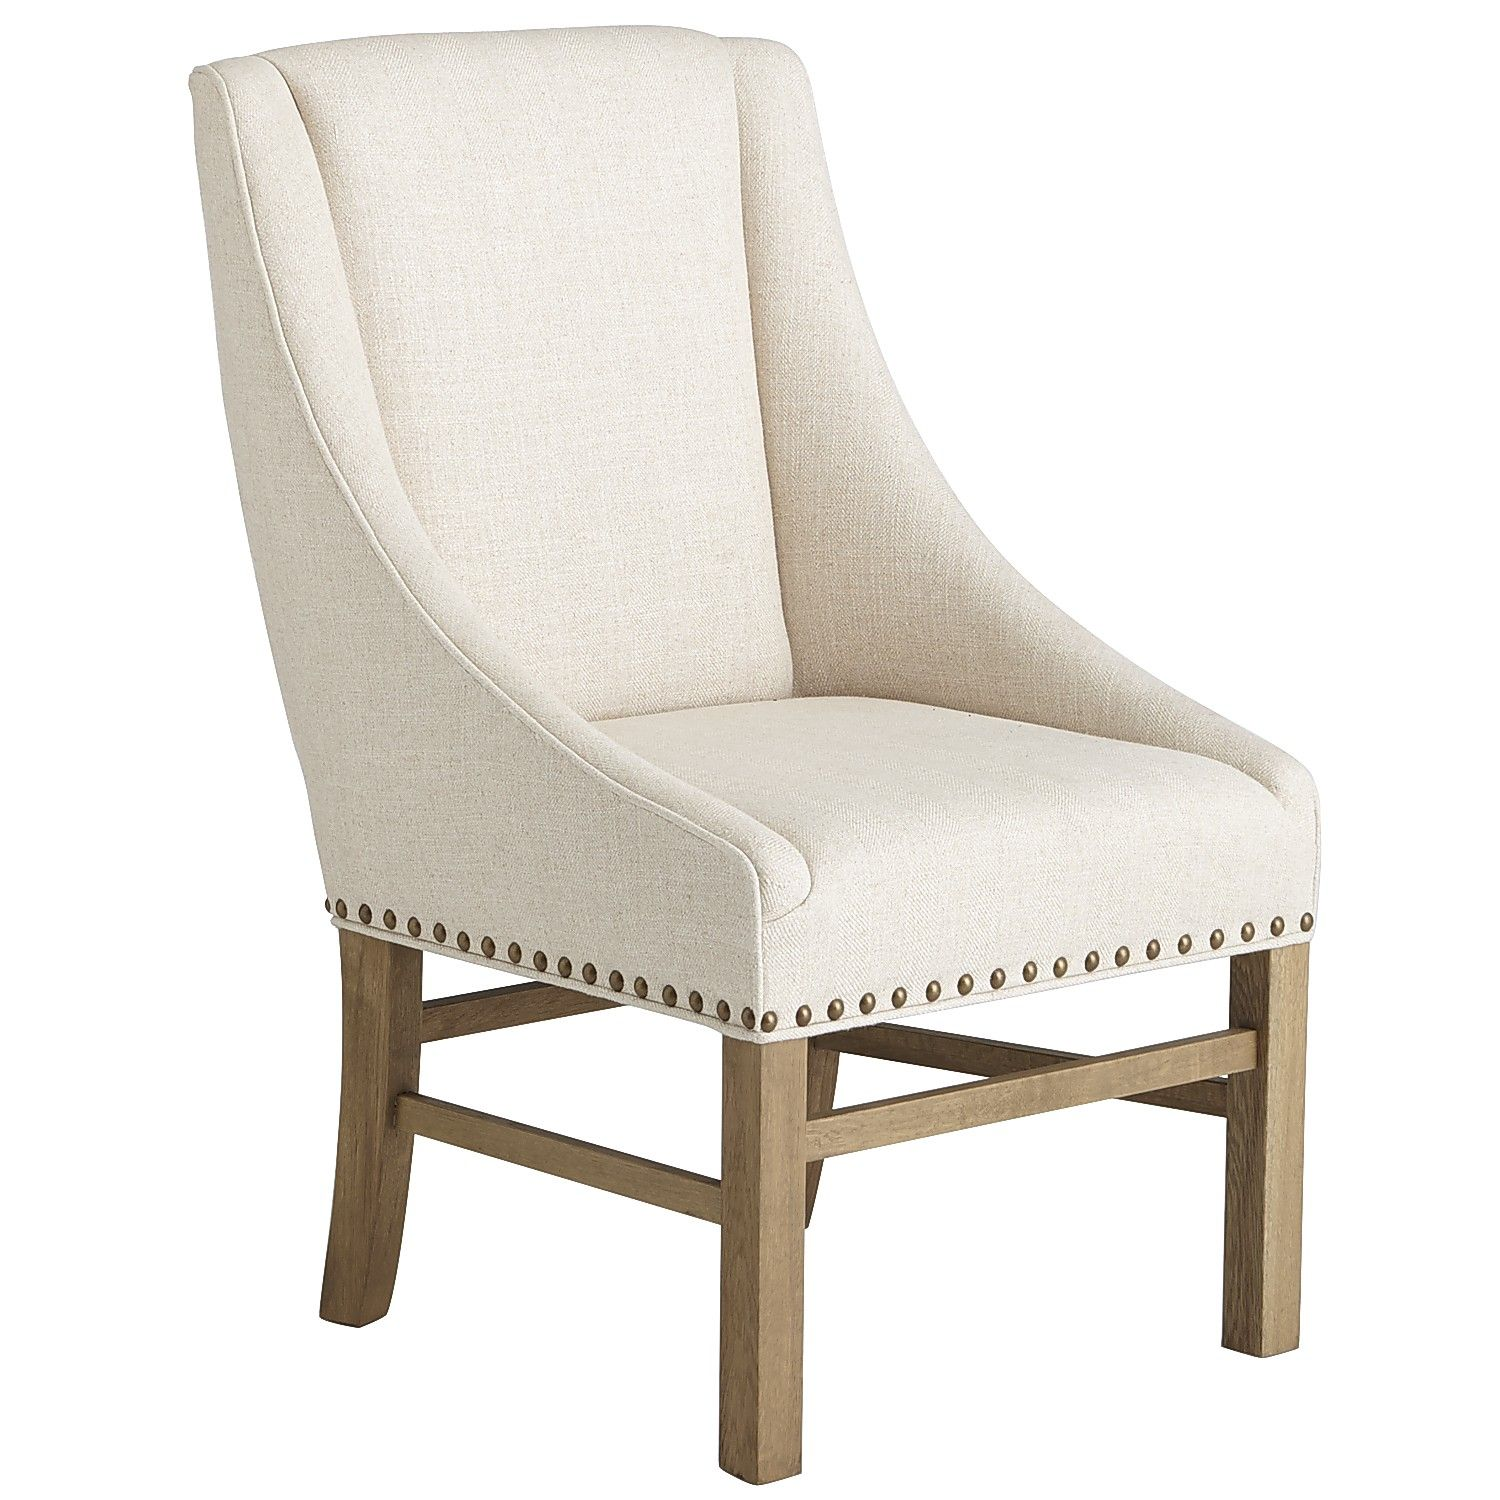 Decor Look Alikes | Pier 1 Miriam Dining Chair